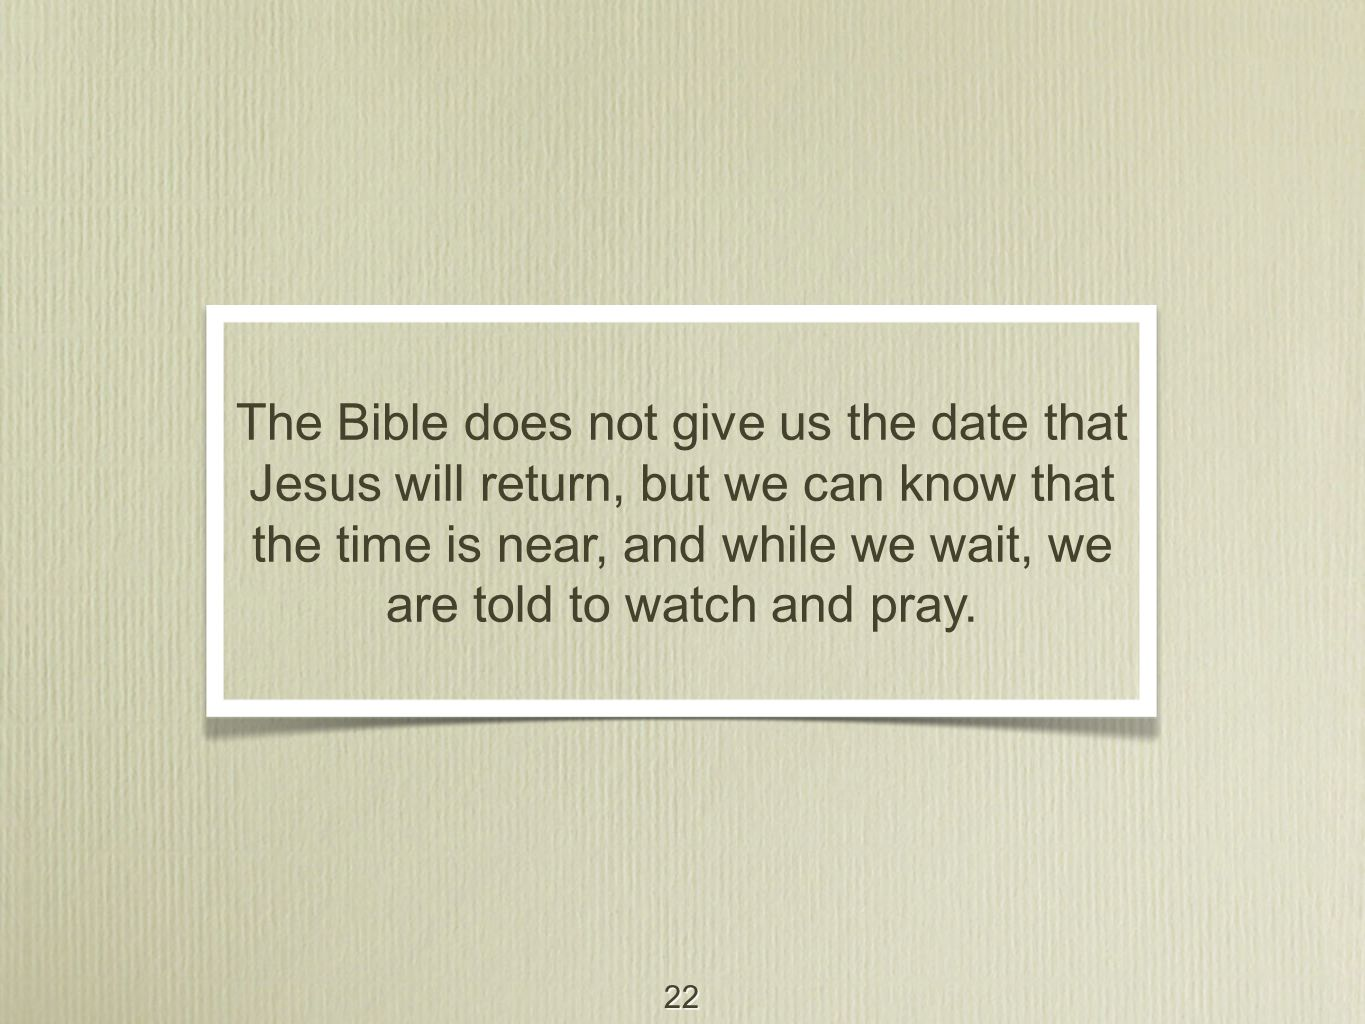 22 The Bible does not give us the date that Jesus will return, but we can know that the time is near, and while we wait, we are told to watch and pray